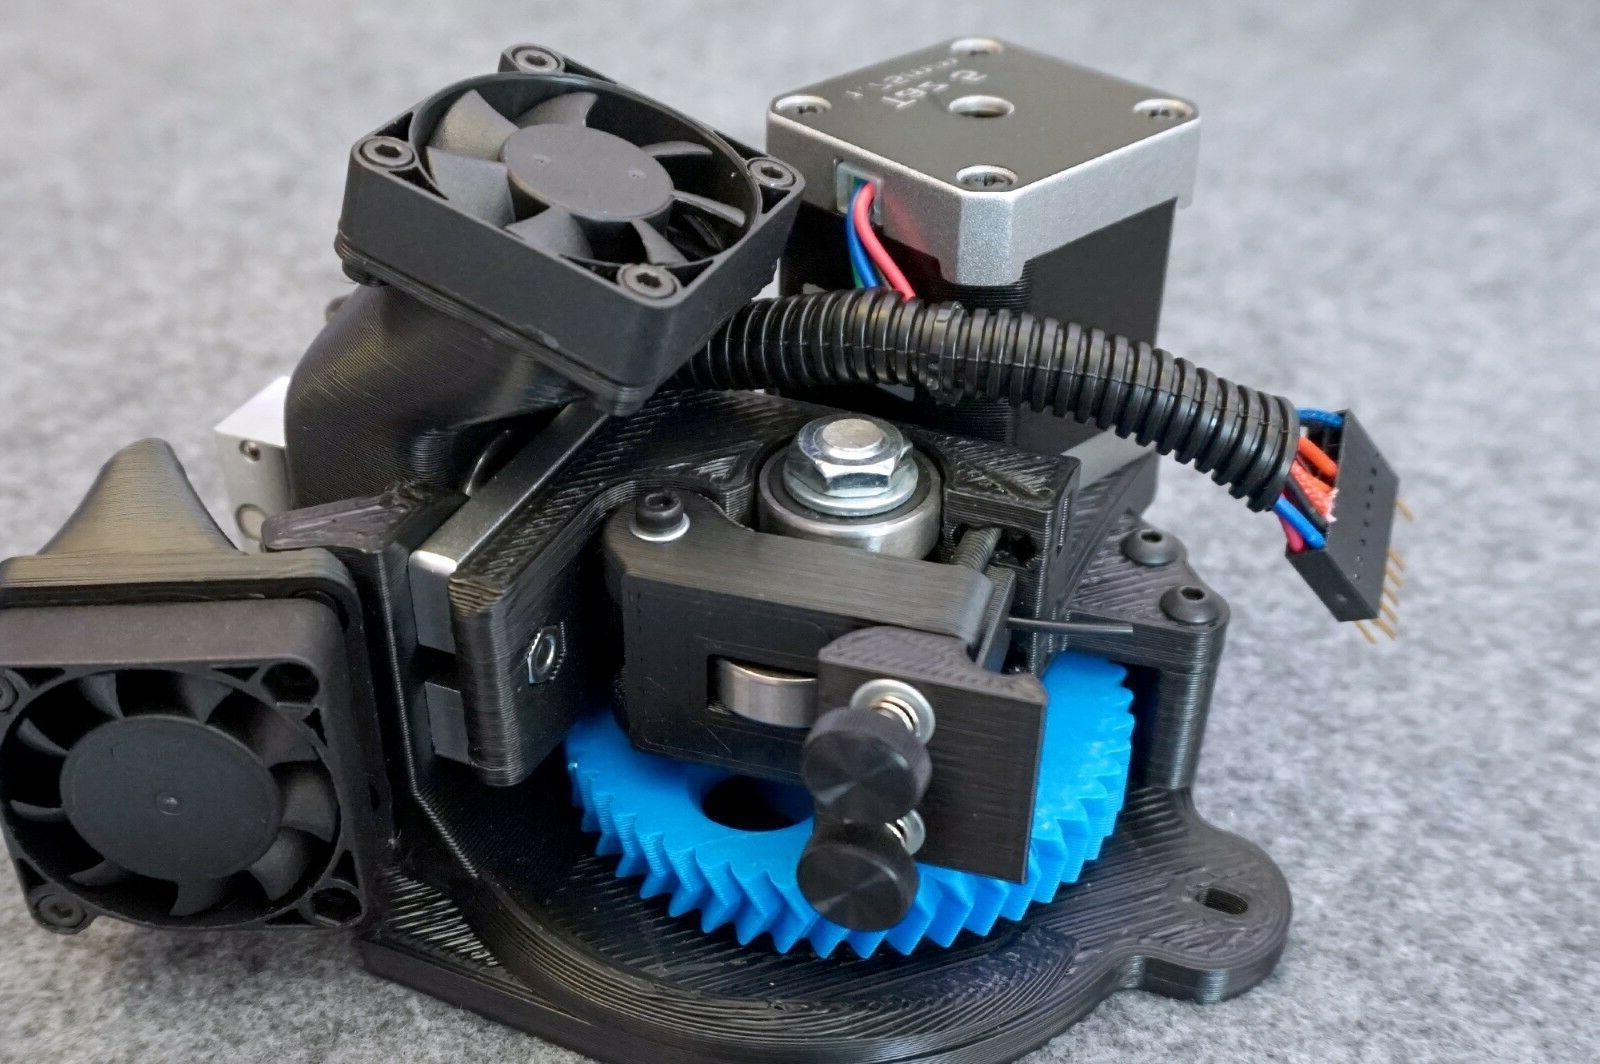 LulzBot Taz Single Extruder Tool .5mm Nozzle, play